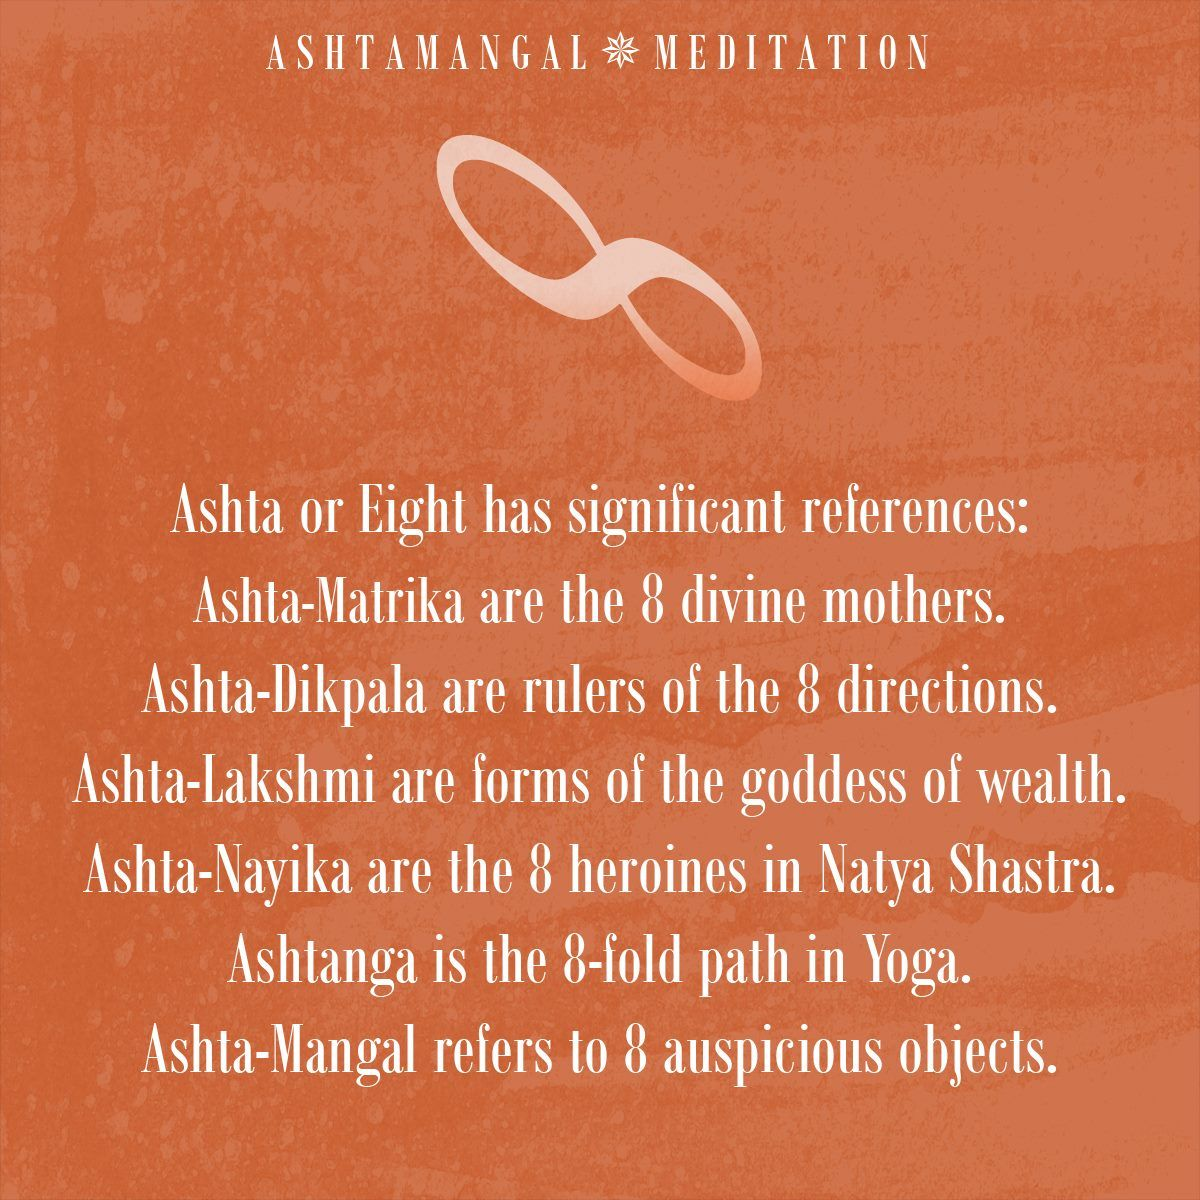 The Power Of The Ashtamangal Meditation Also Comes From The Notion